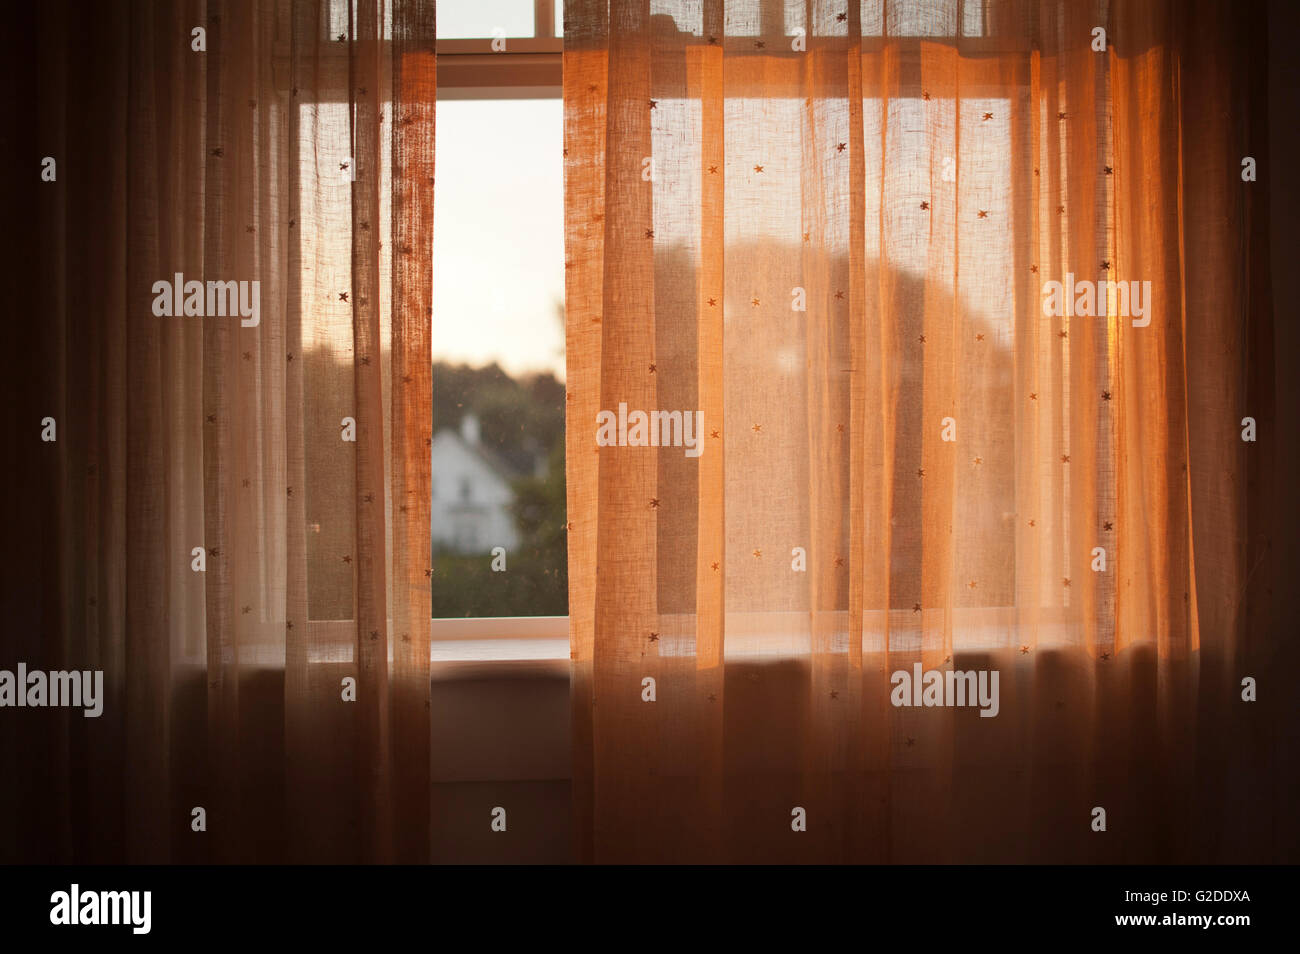 Sheer Curtains in Window - Stock Image